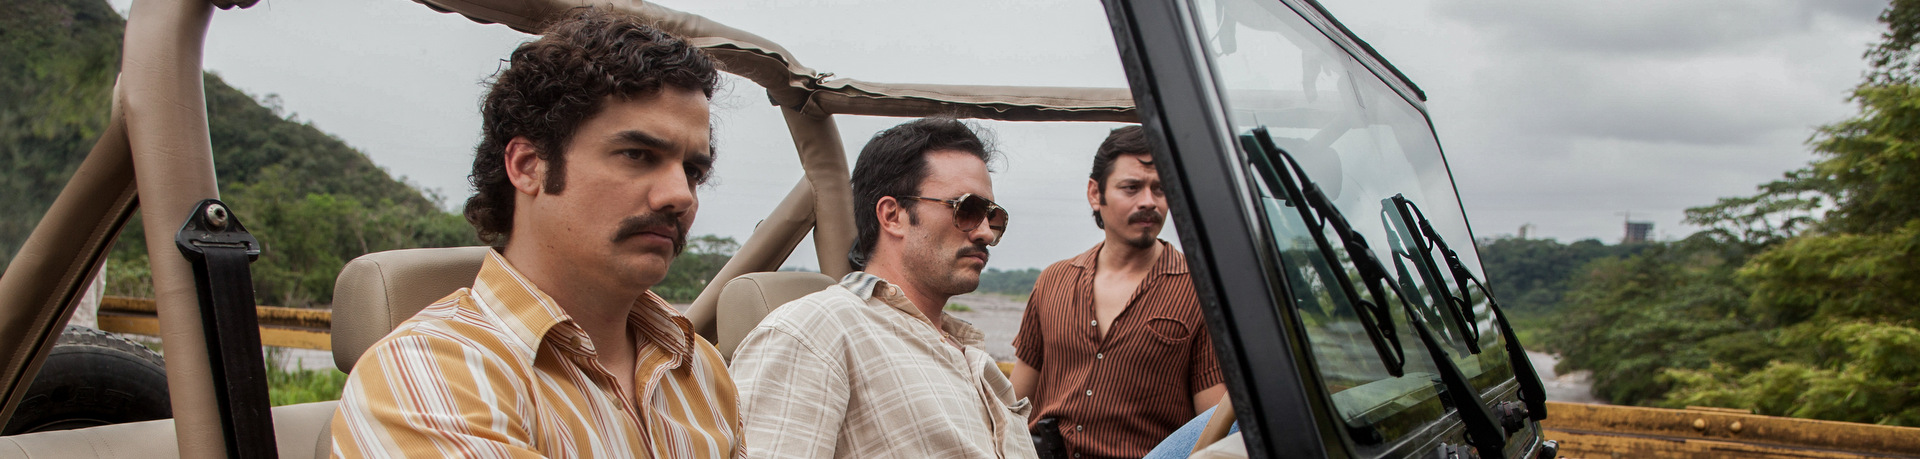 """WAGNER MOURA, JUAN PABLO RABA and JORGE A. JIMENEZ star in NARCOS.  NARCOS S01E01 """"Descenso"""""""